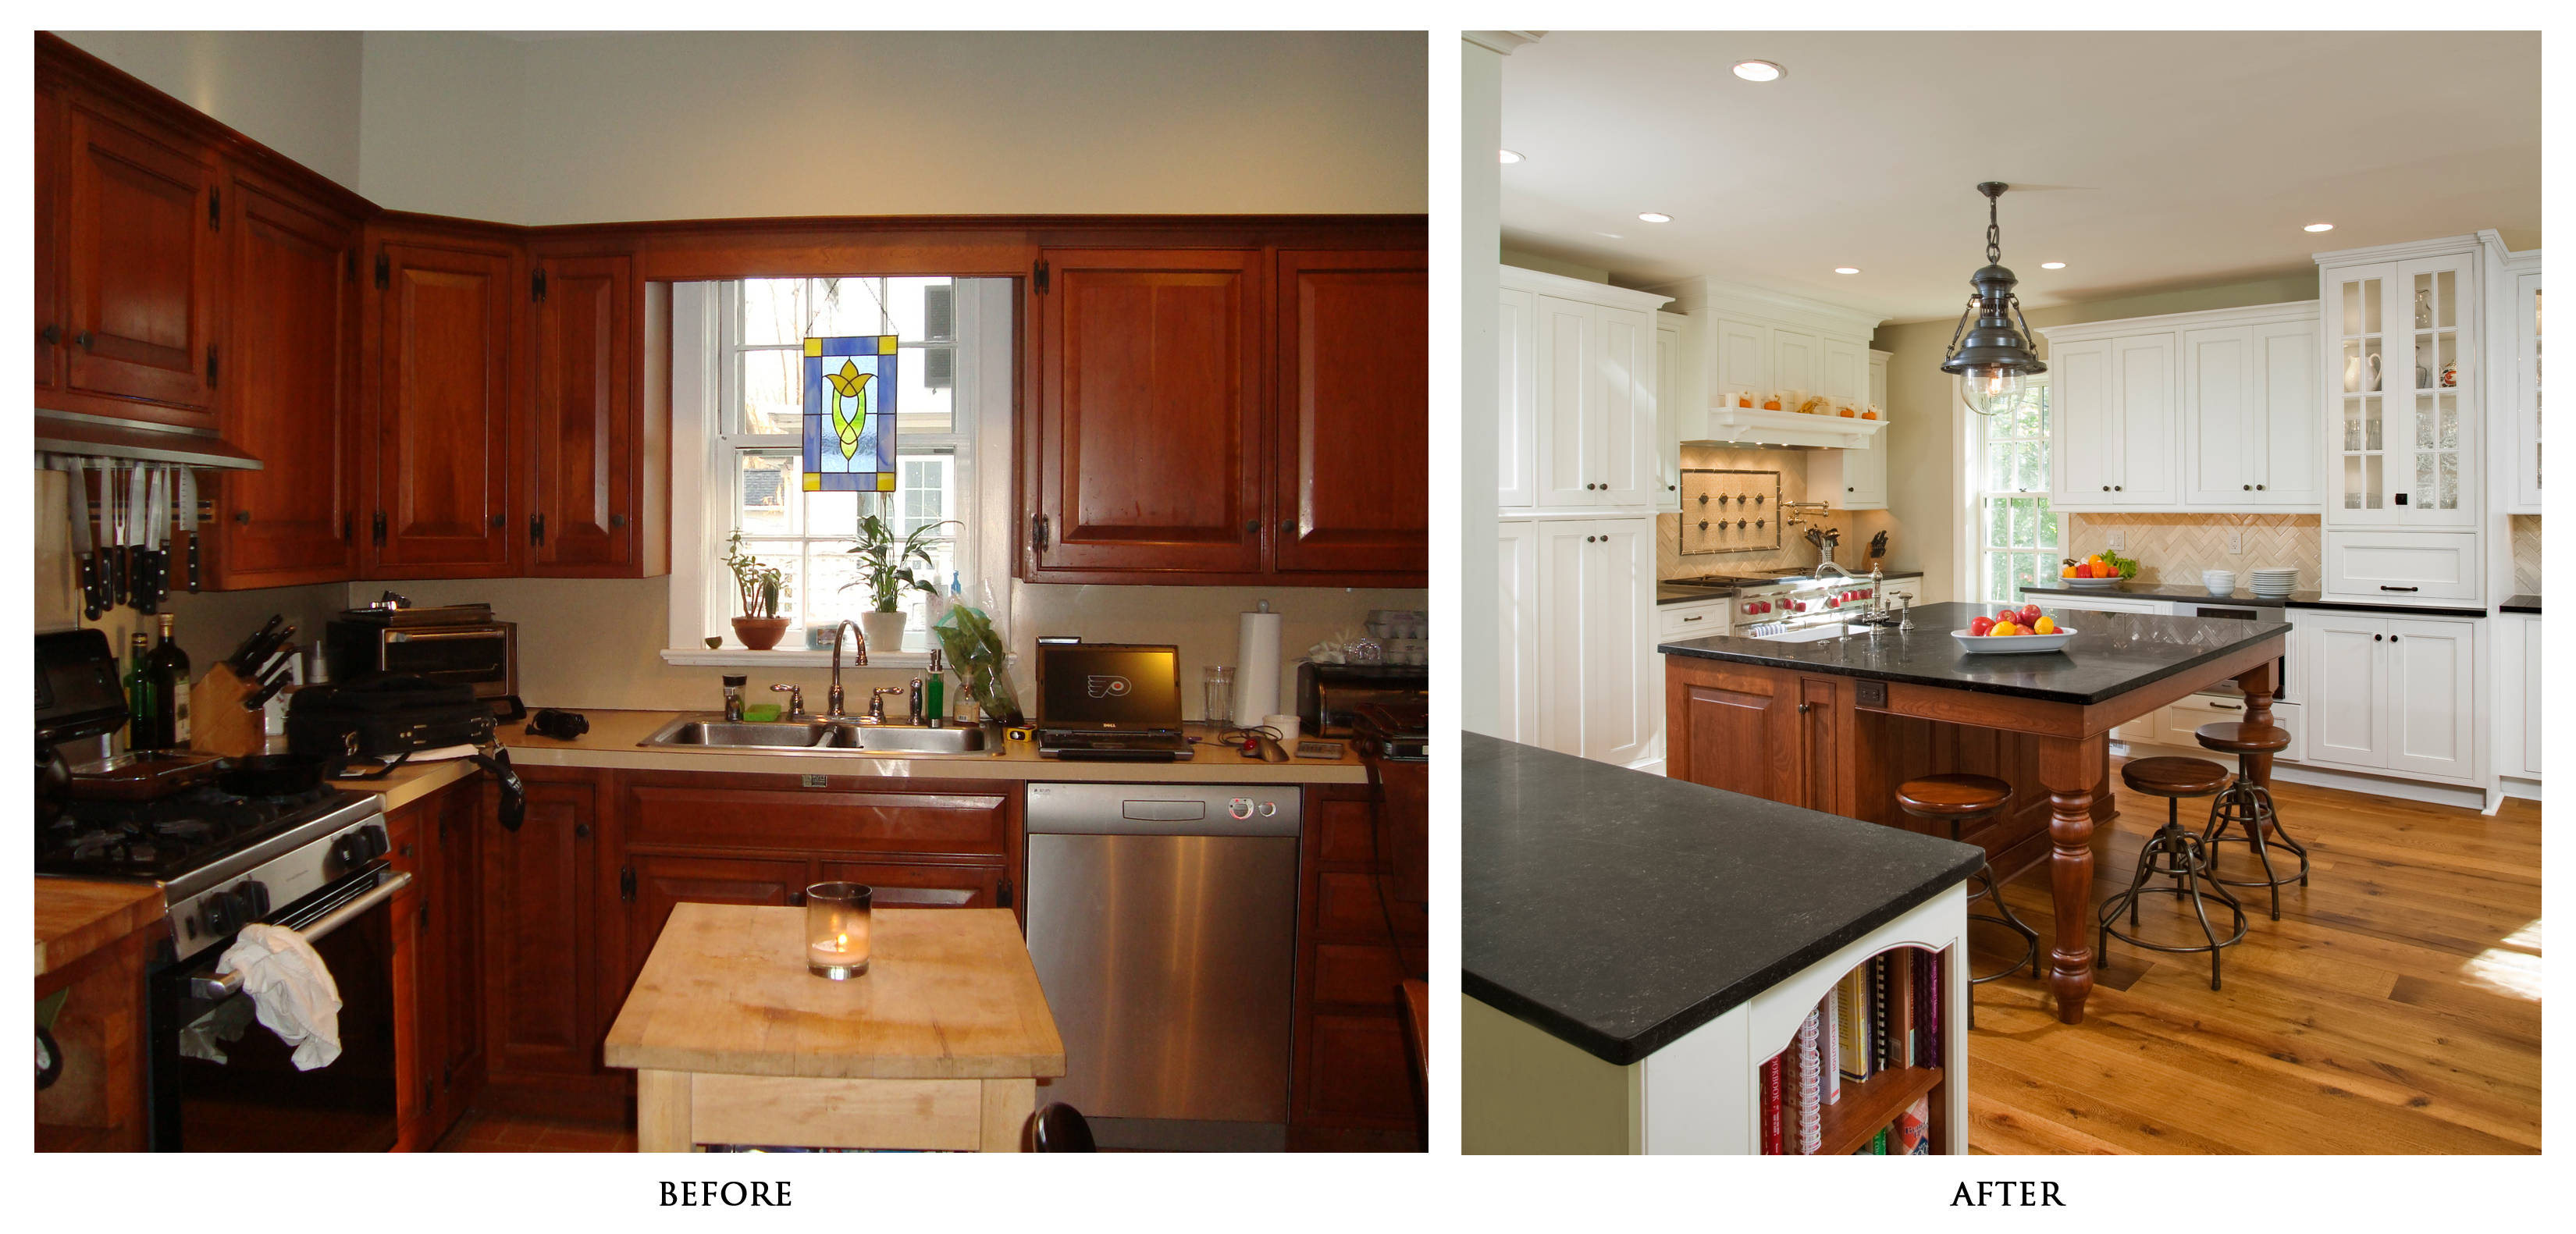 Kitchen Renovation Before And After home design ideas. kitchen makeover pictures kitchen remodeling